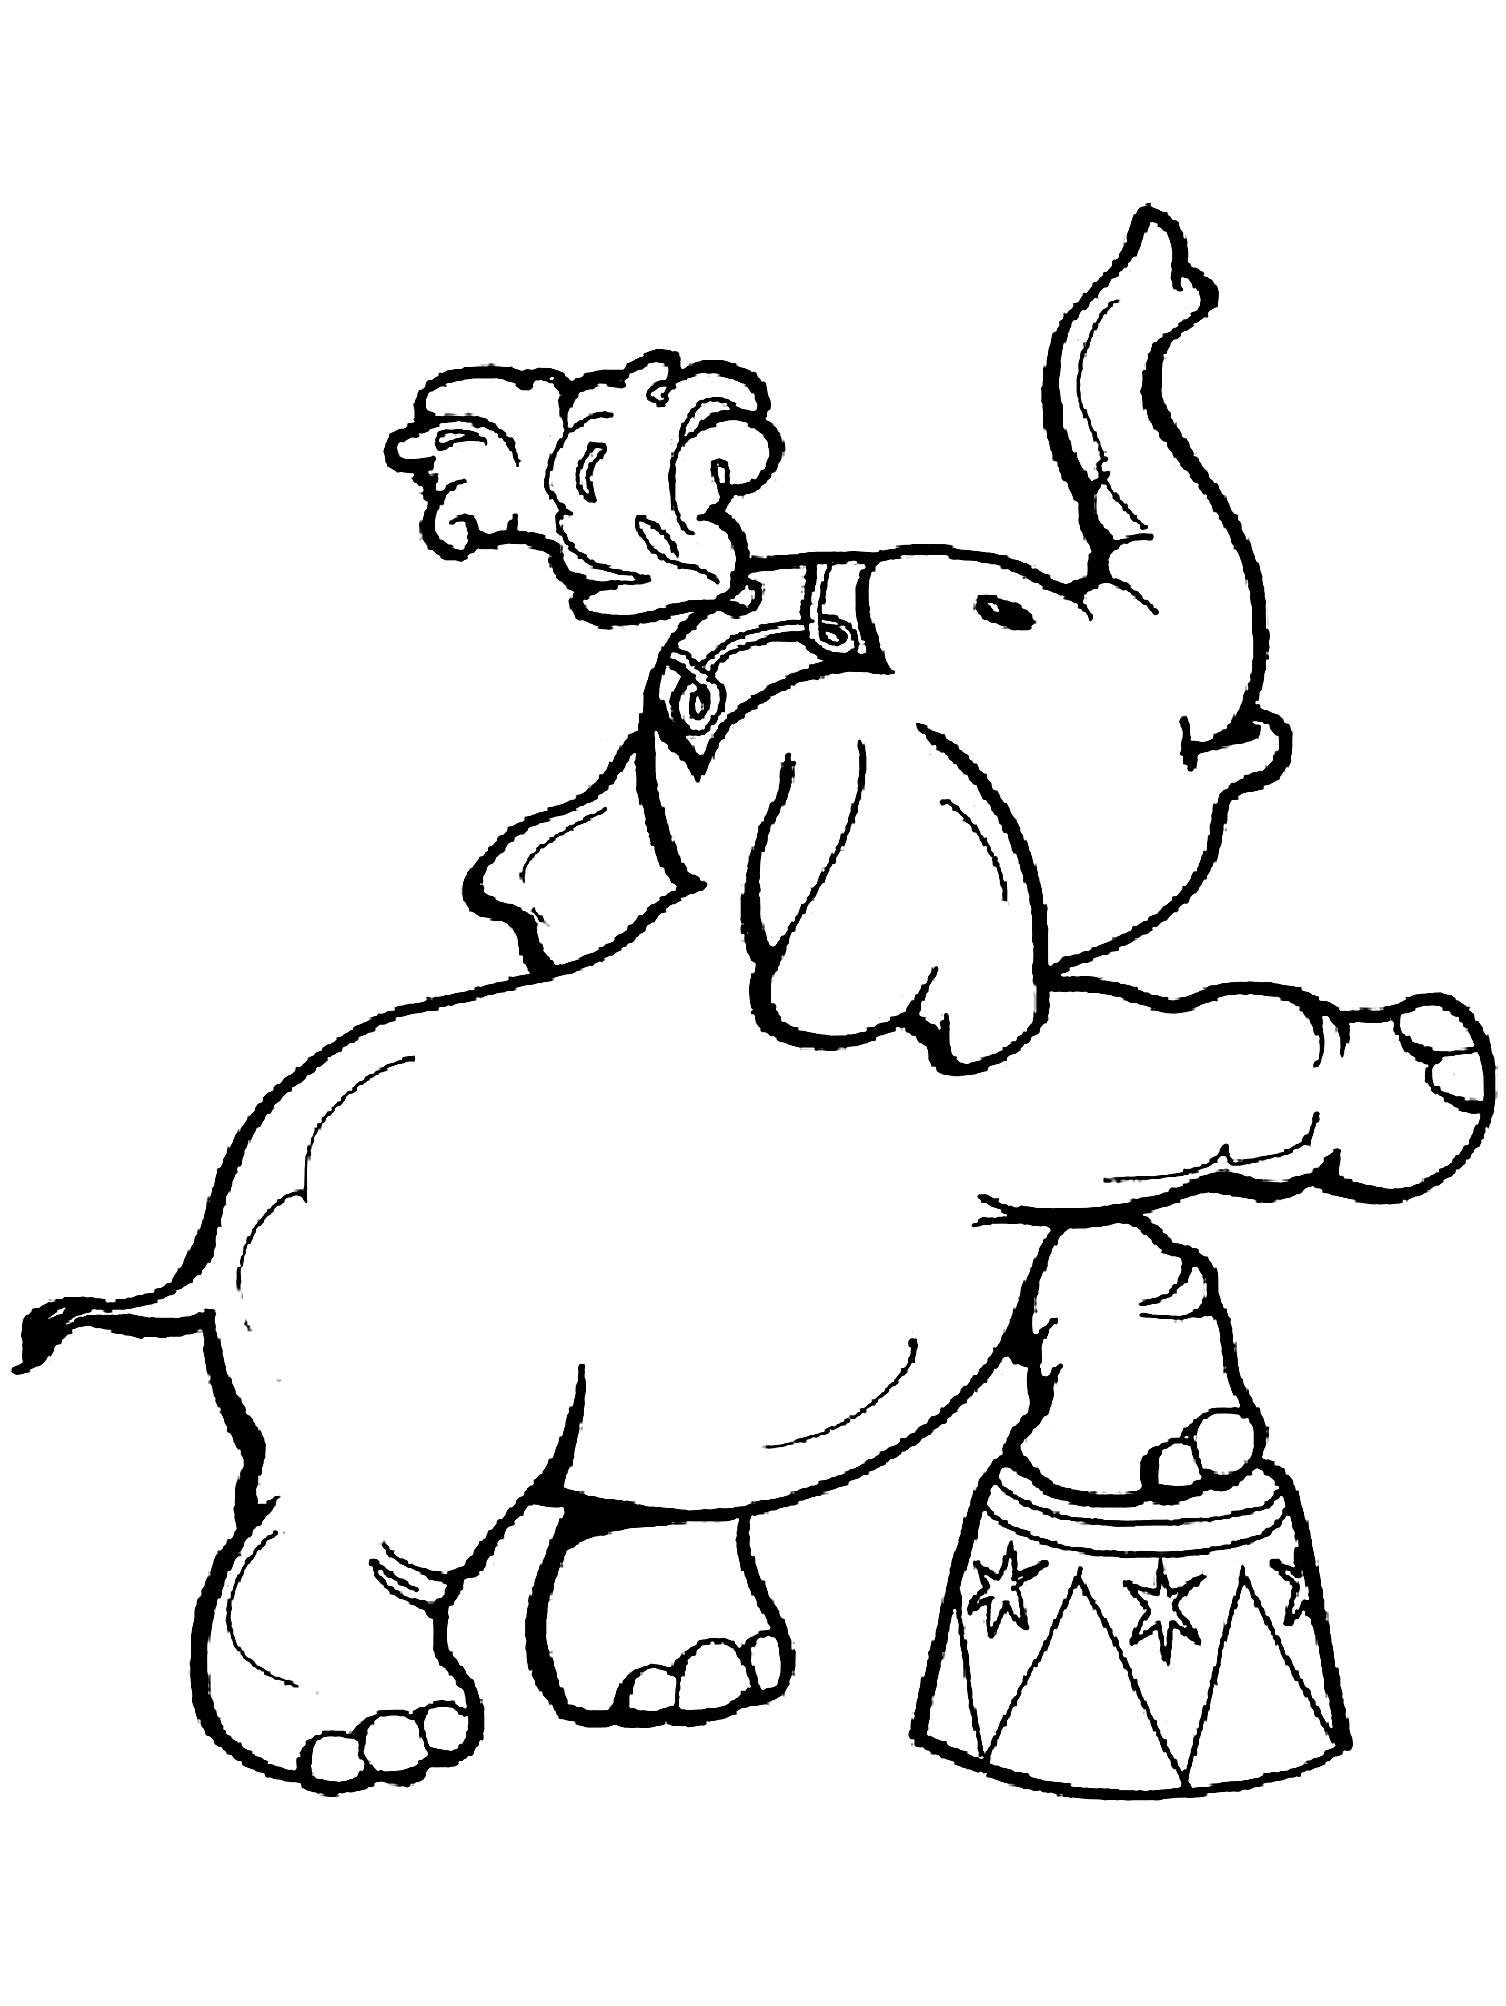 easy clown coloring pages cute clown coloring pages at getcoloringscom free pages clown easy coloring